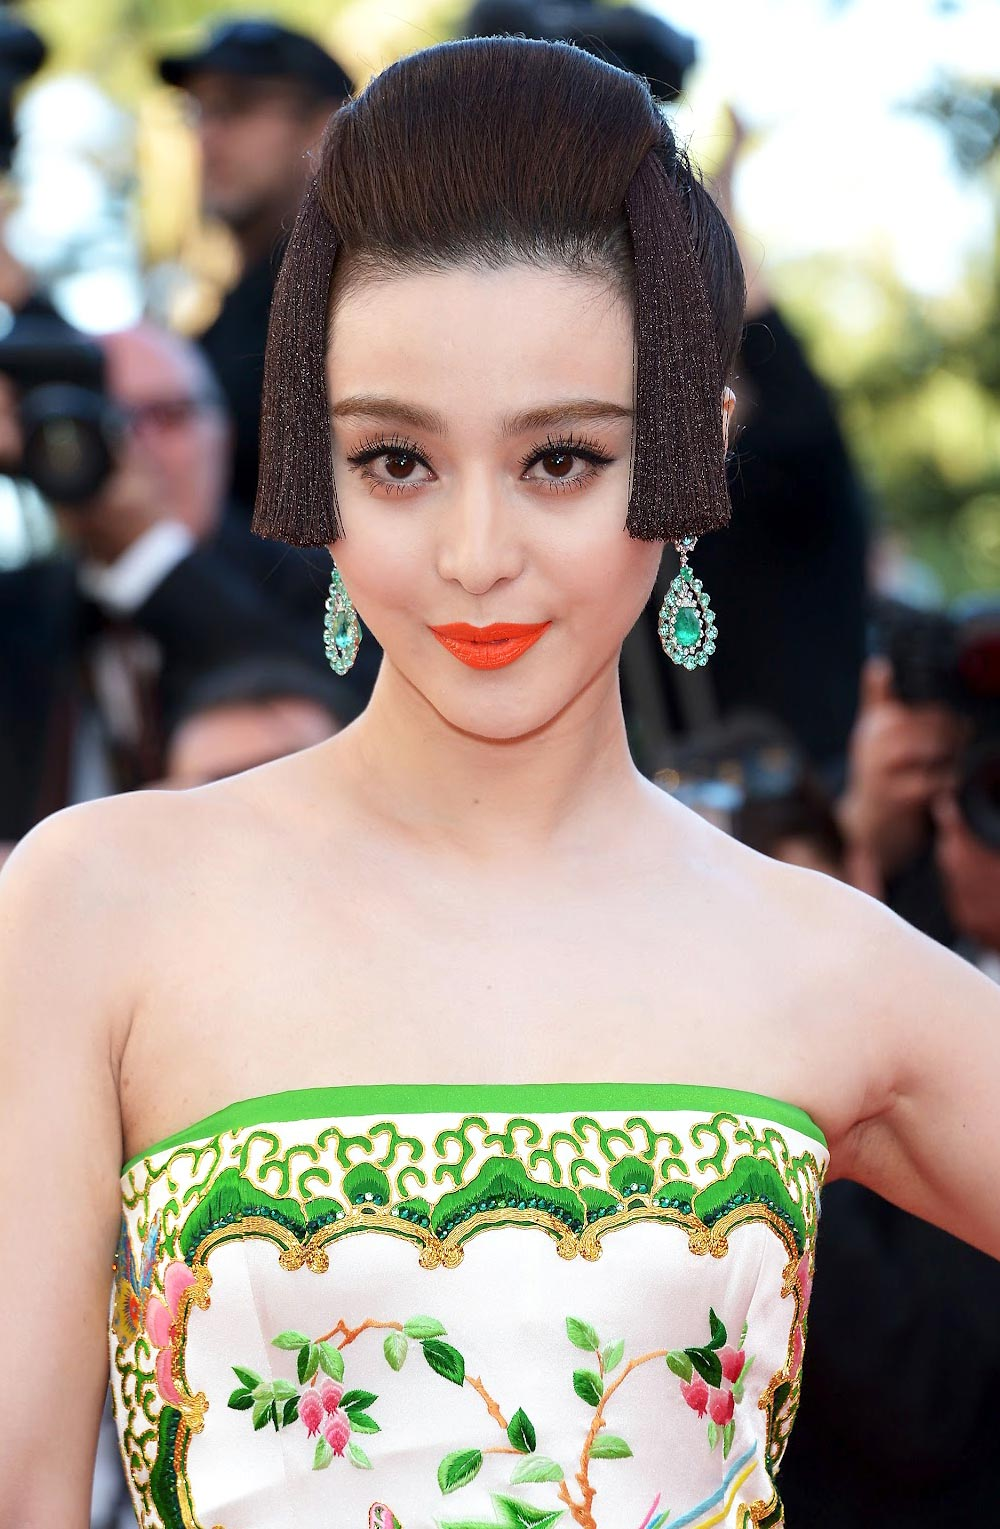 fan-bingbing-makeup-2012-cannes.jpg